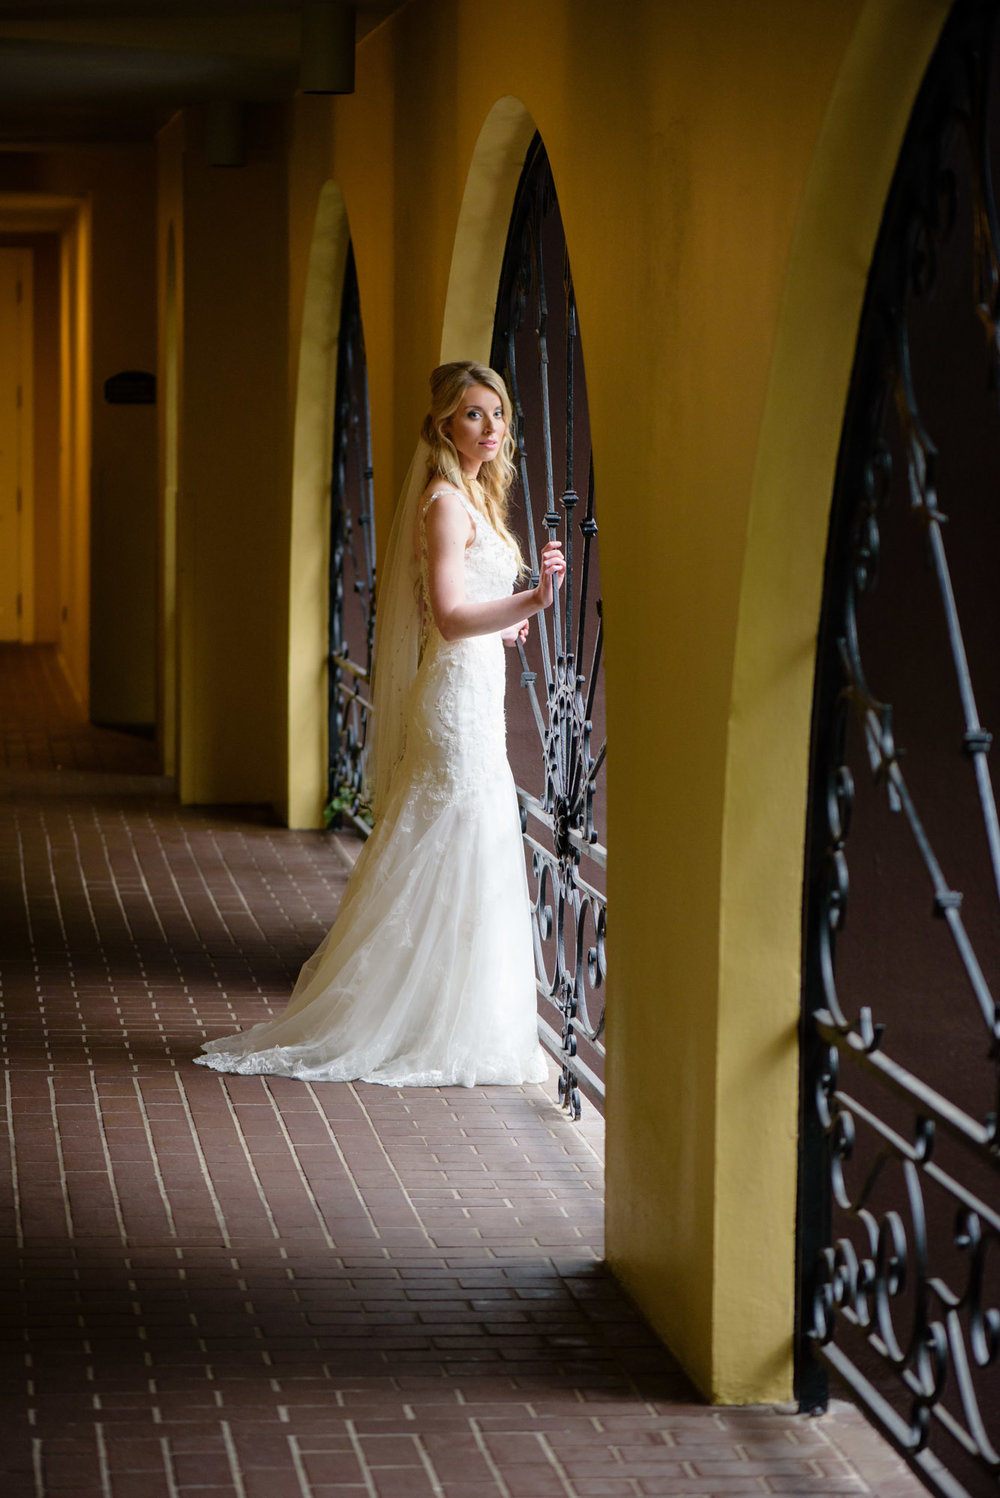 Natural light portrait at New Orleans' Hotel Mazarin